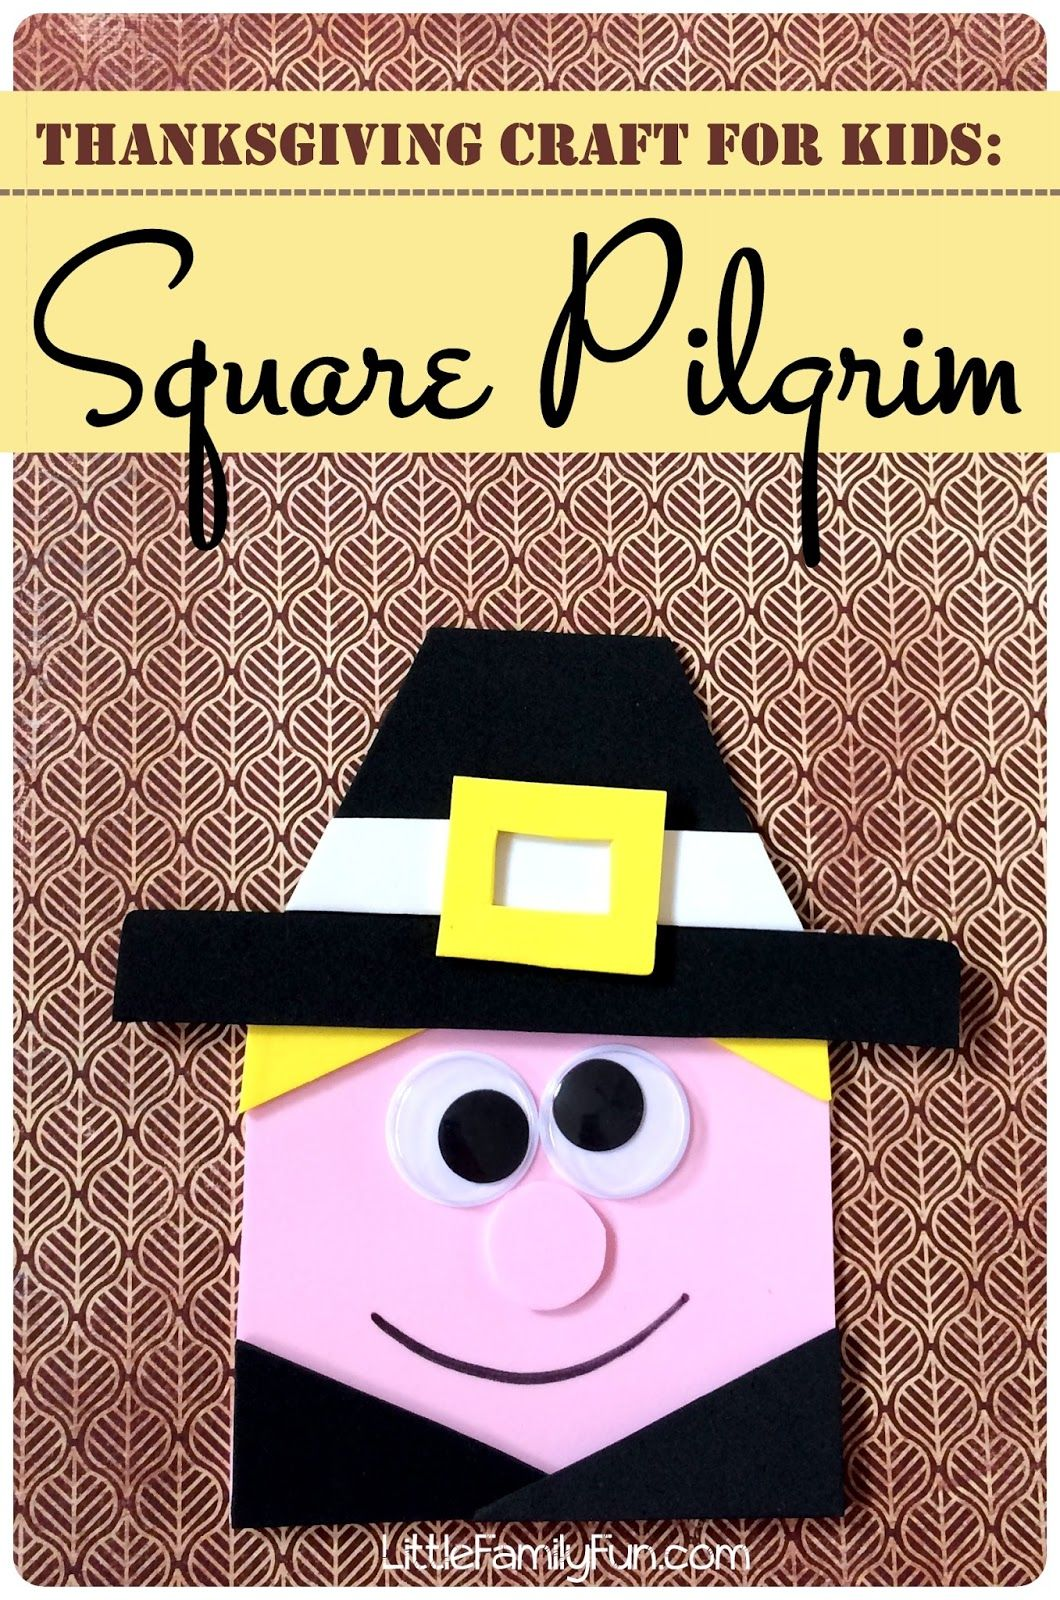 Square Pilgrim Craft For Kids Fun And Easy Thanksgiving Craft